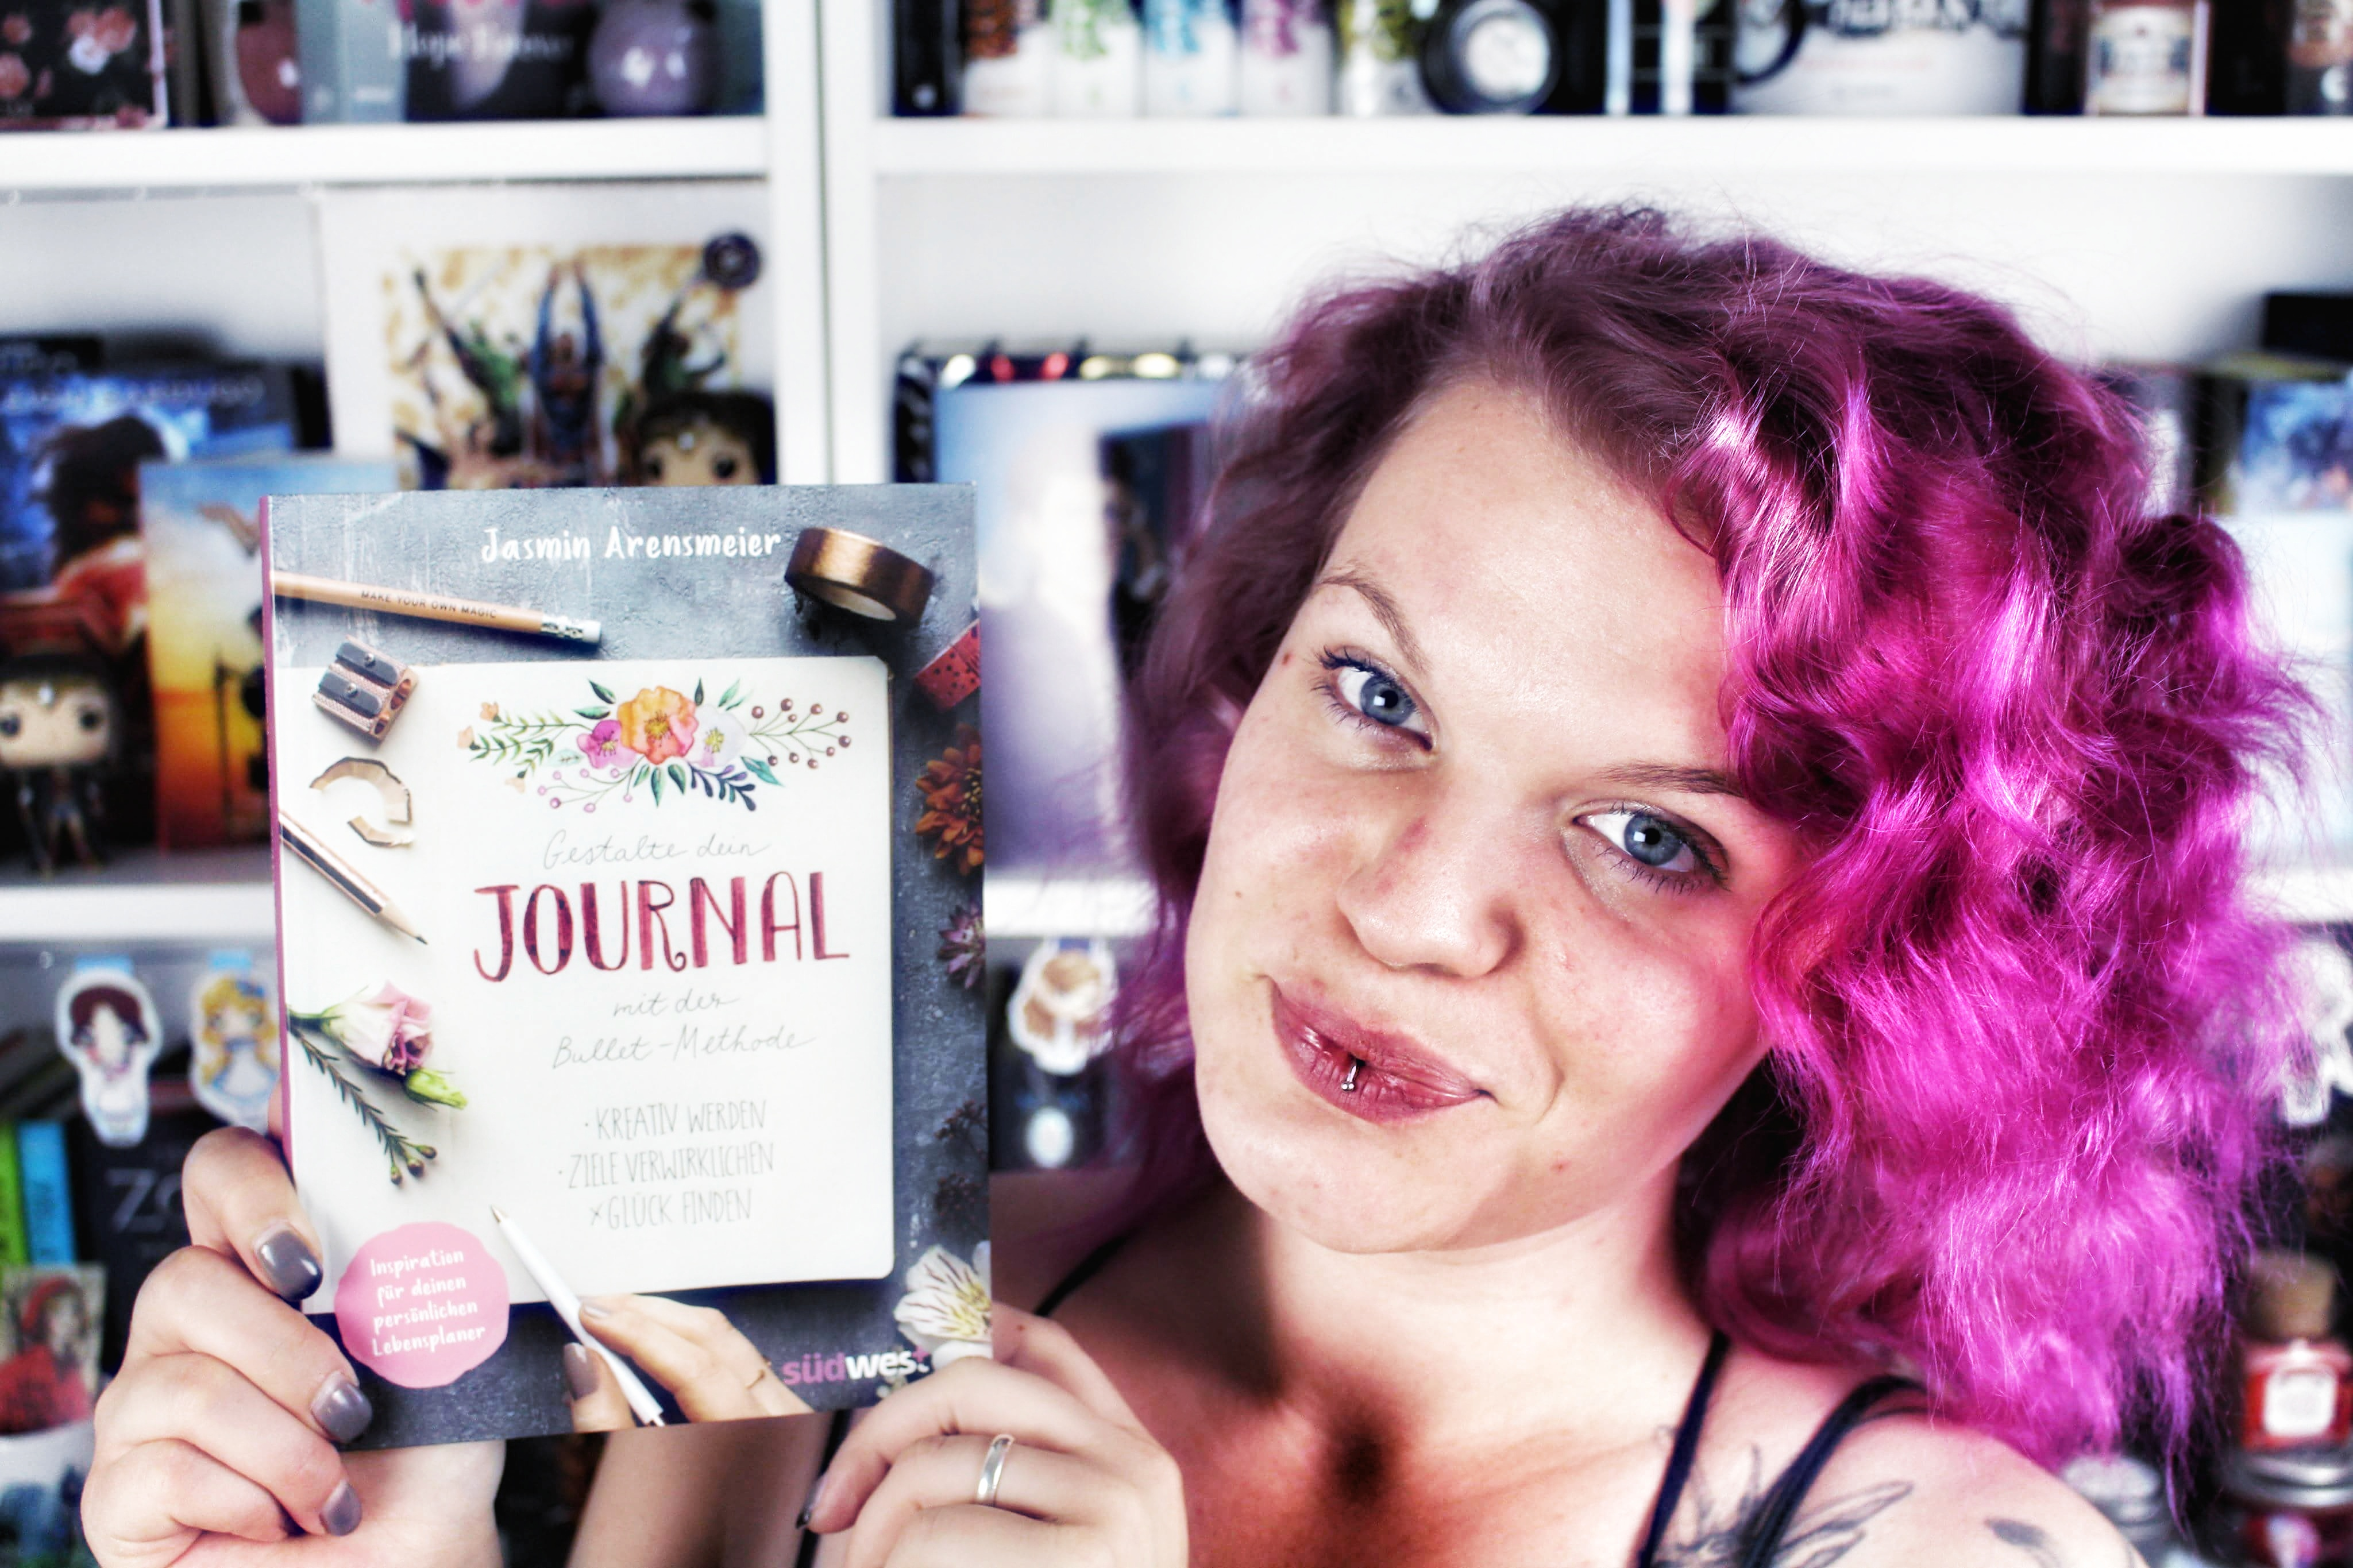 [DIY] Gestalte dein Journal mit der Bullet-Methode / Jasmin Arensmeier